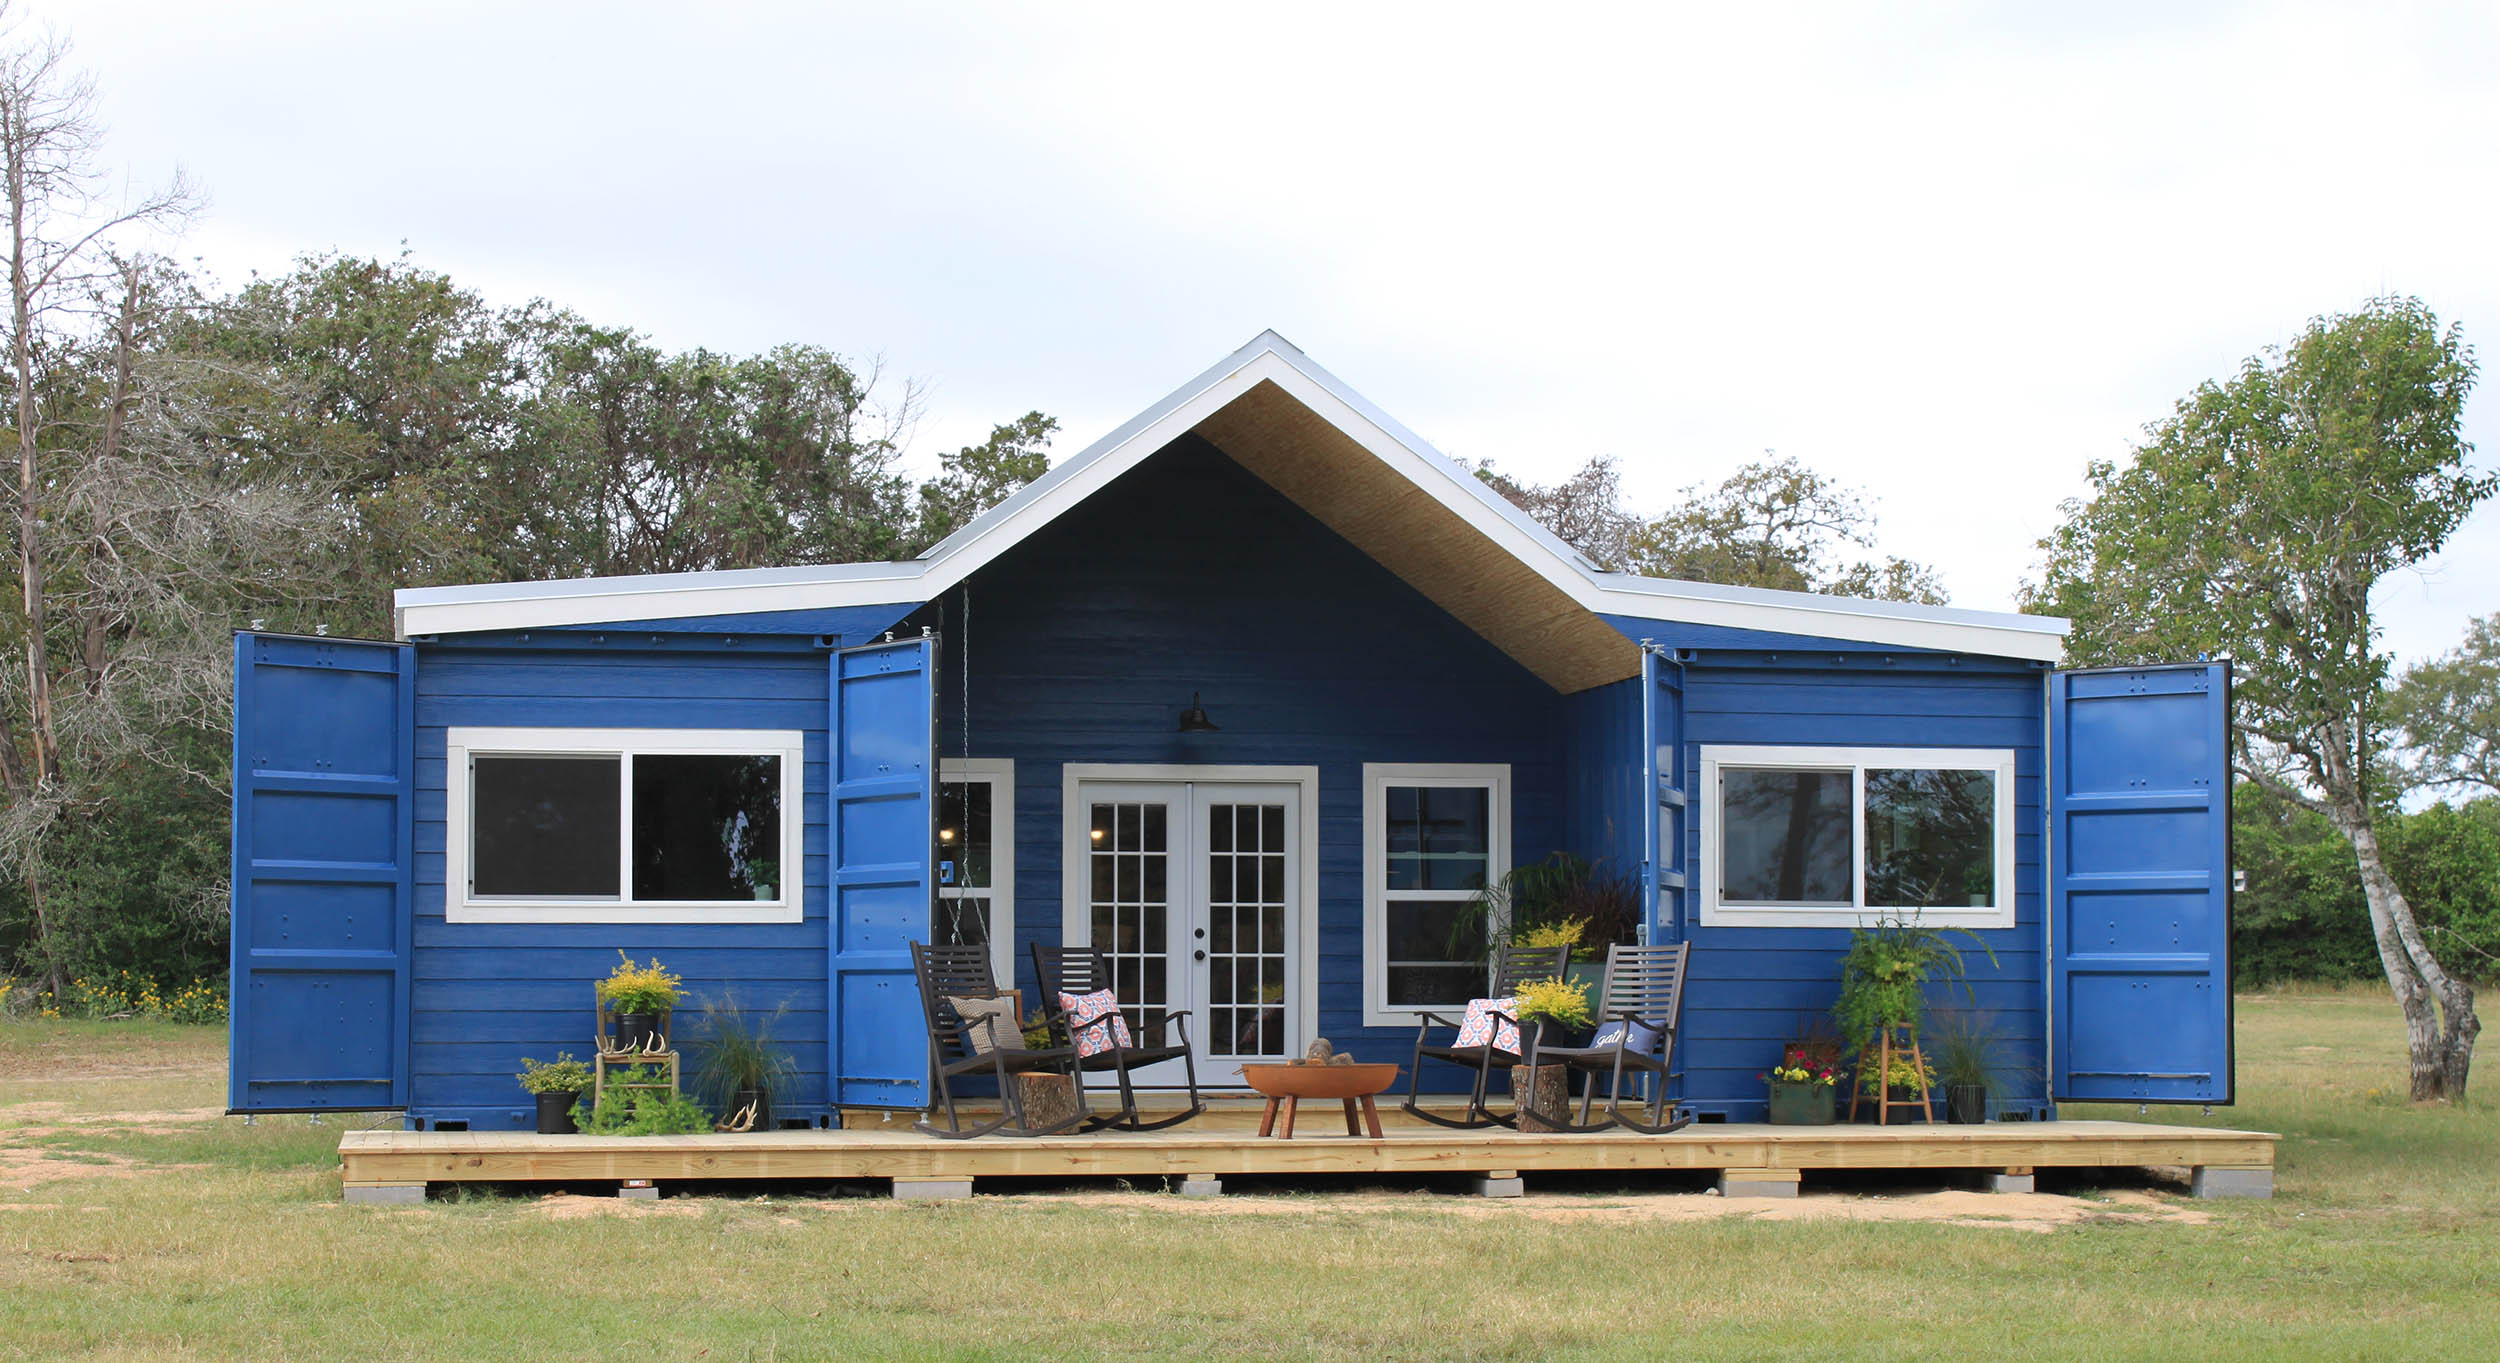 6 shipping container homes that you can buy right now